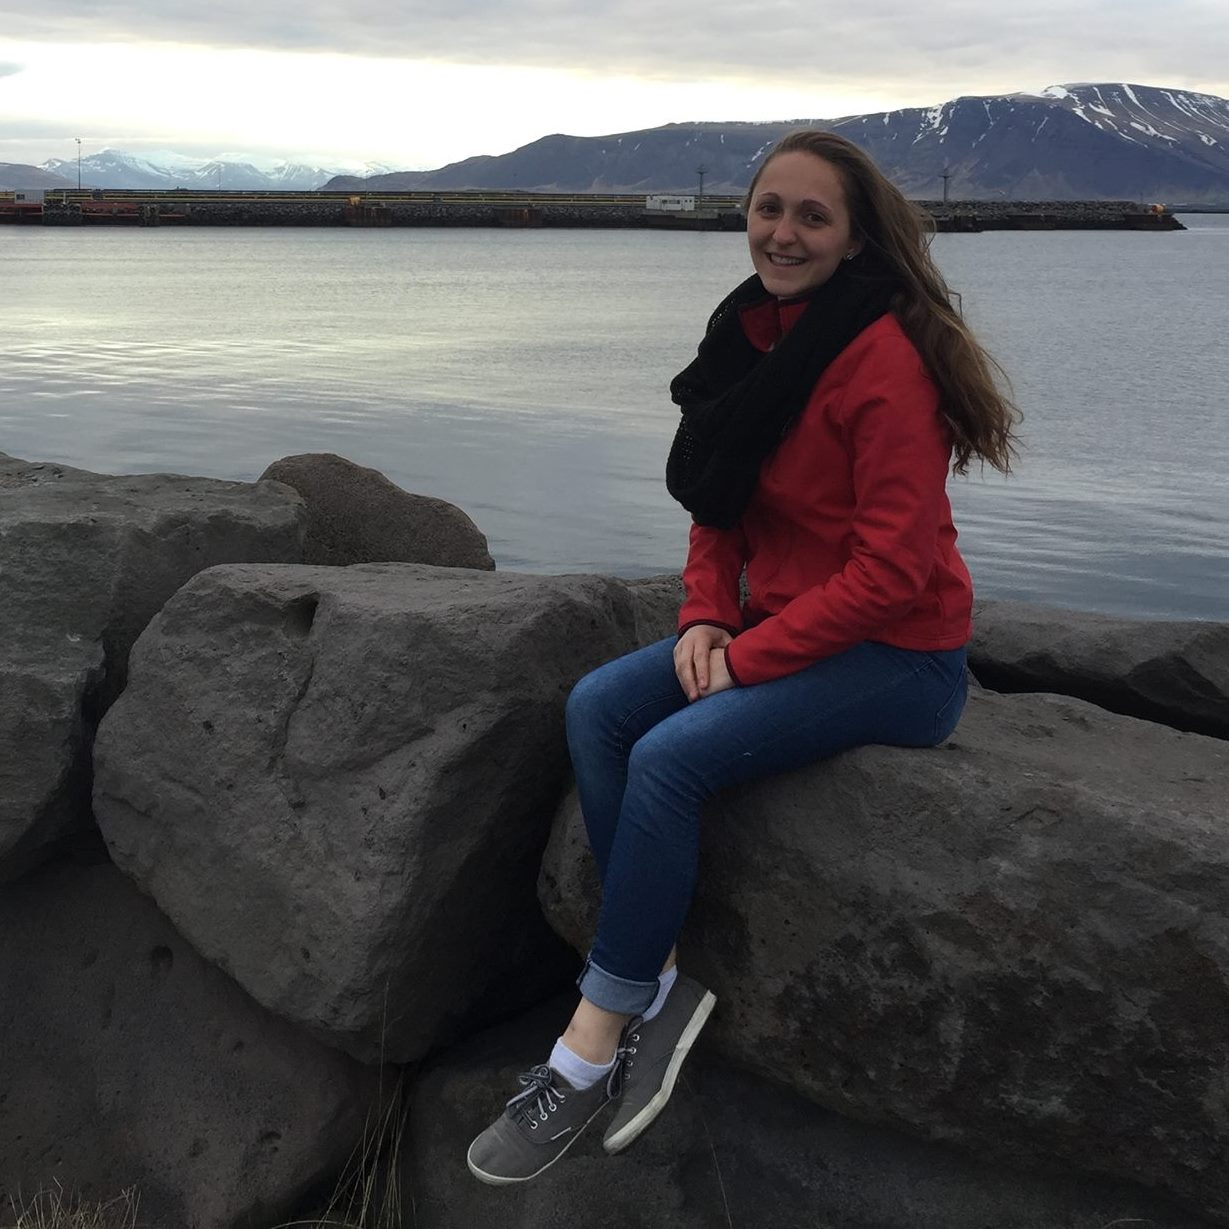 Samantha Weiss in Iceland talking about traveling on your period